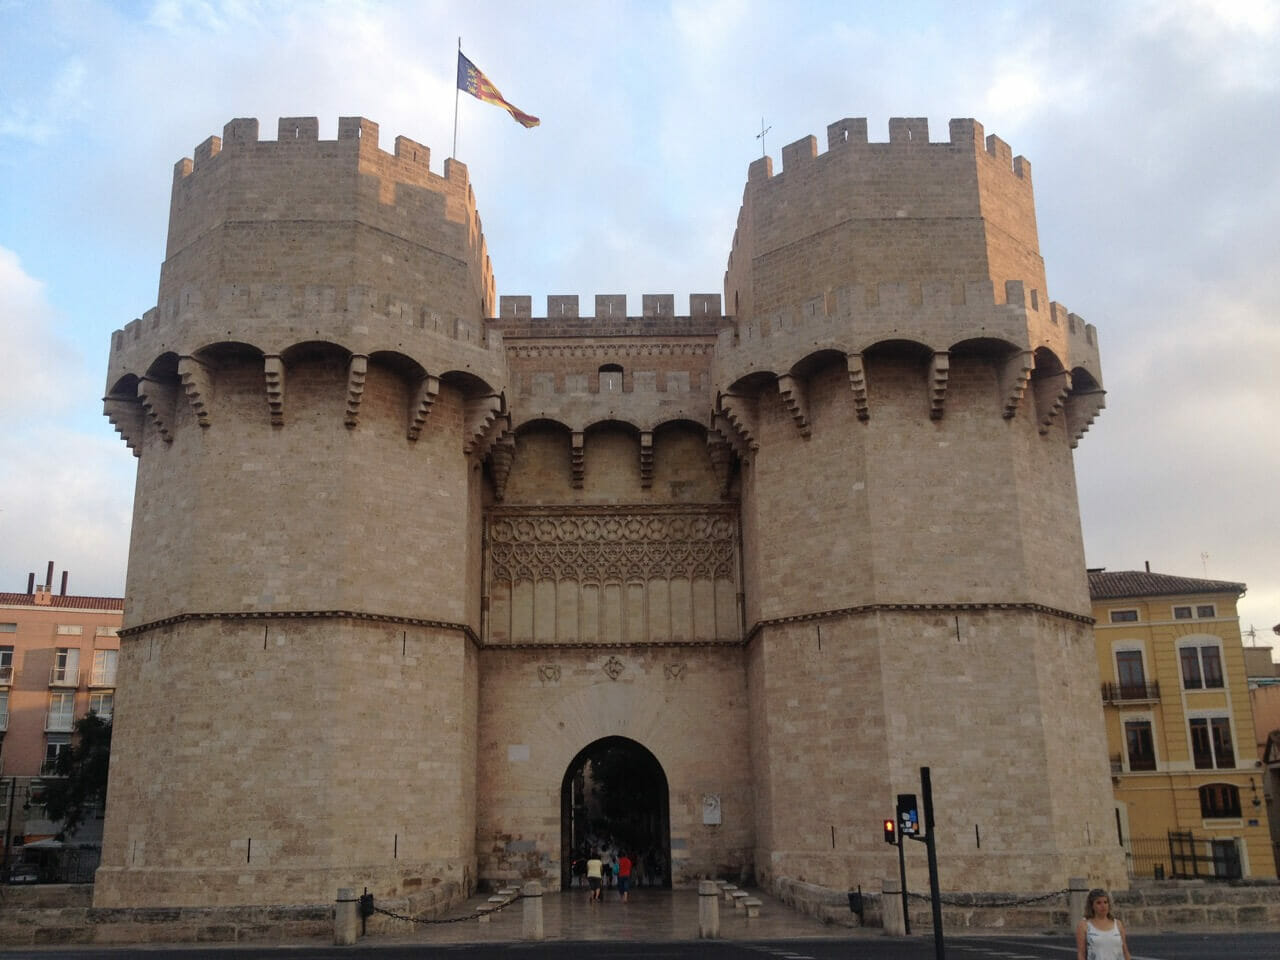 Torres de Serrano is one of the city gate towers remaining from the ancient walled city of Valencia.